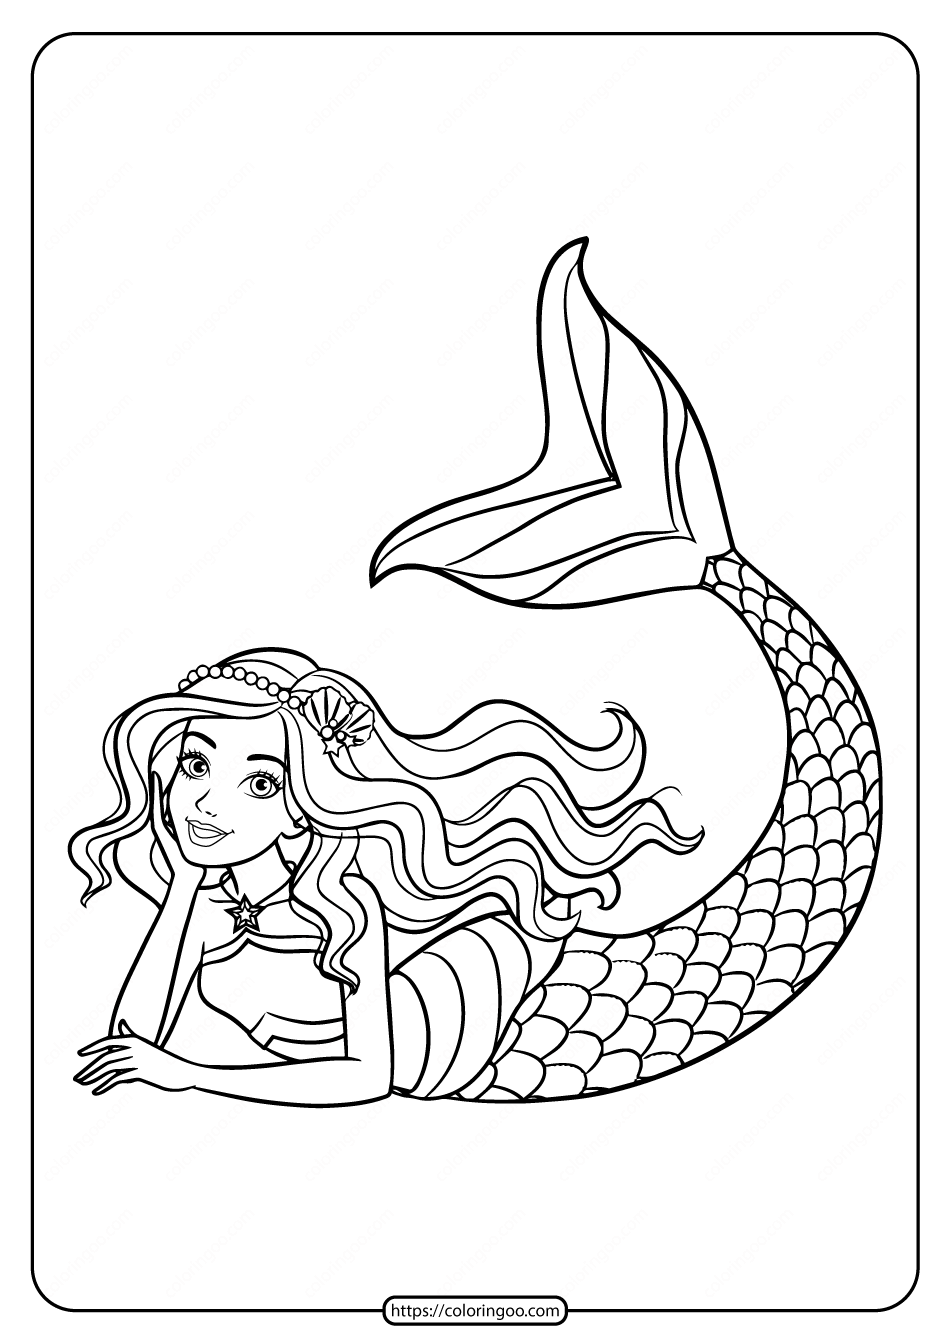 Barbie Princess Mermaid Coloring Pages In 2020 Barbie Coloring Pages Mermaid Coloring Princess Coloring Pages